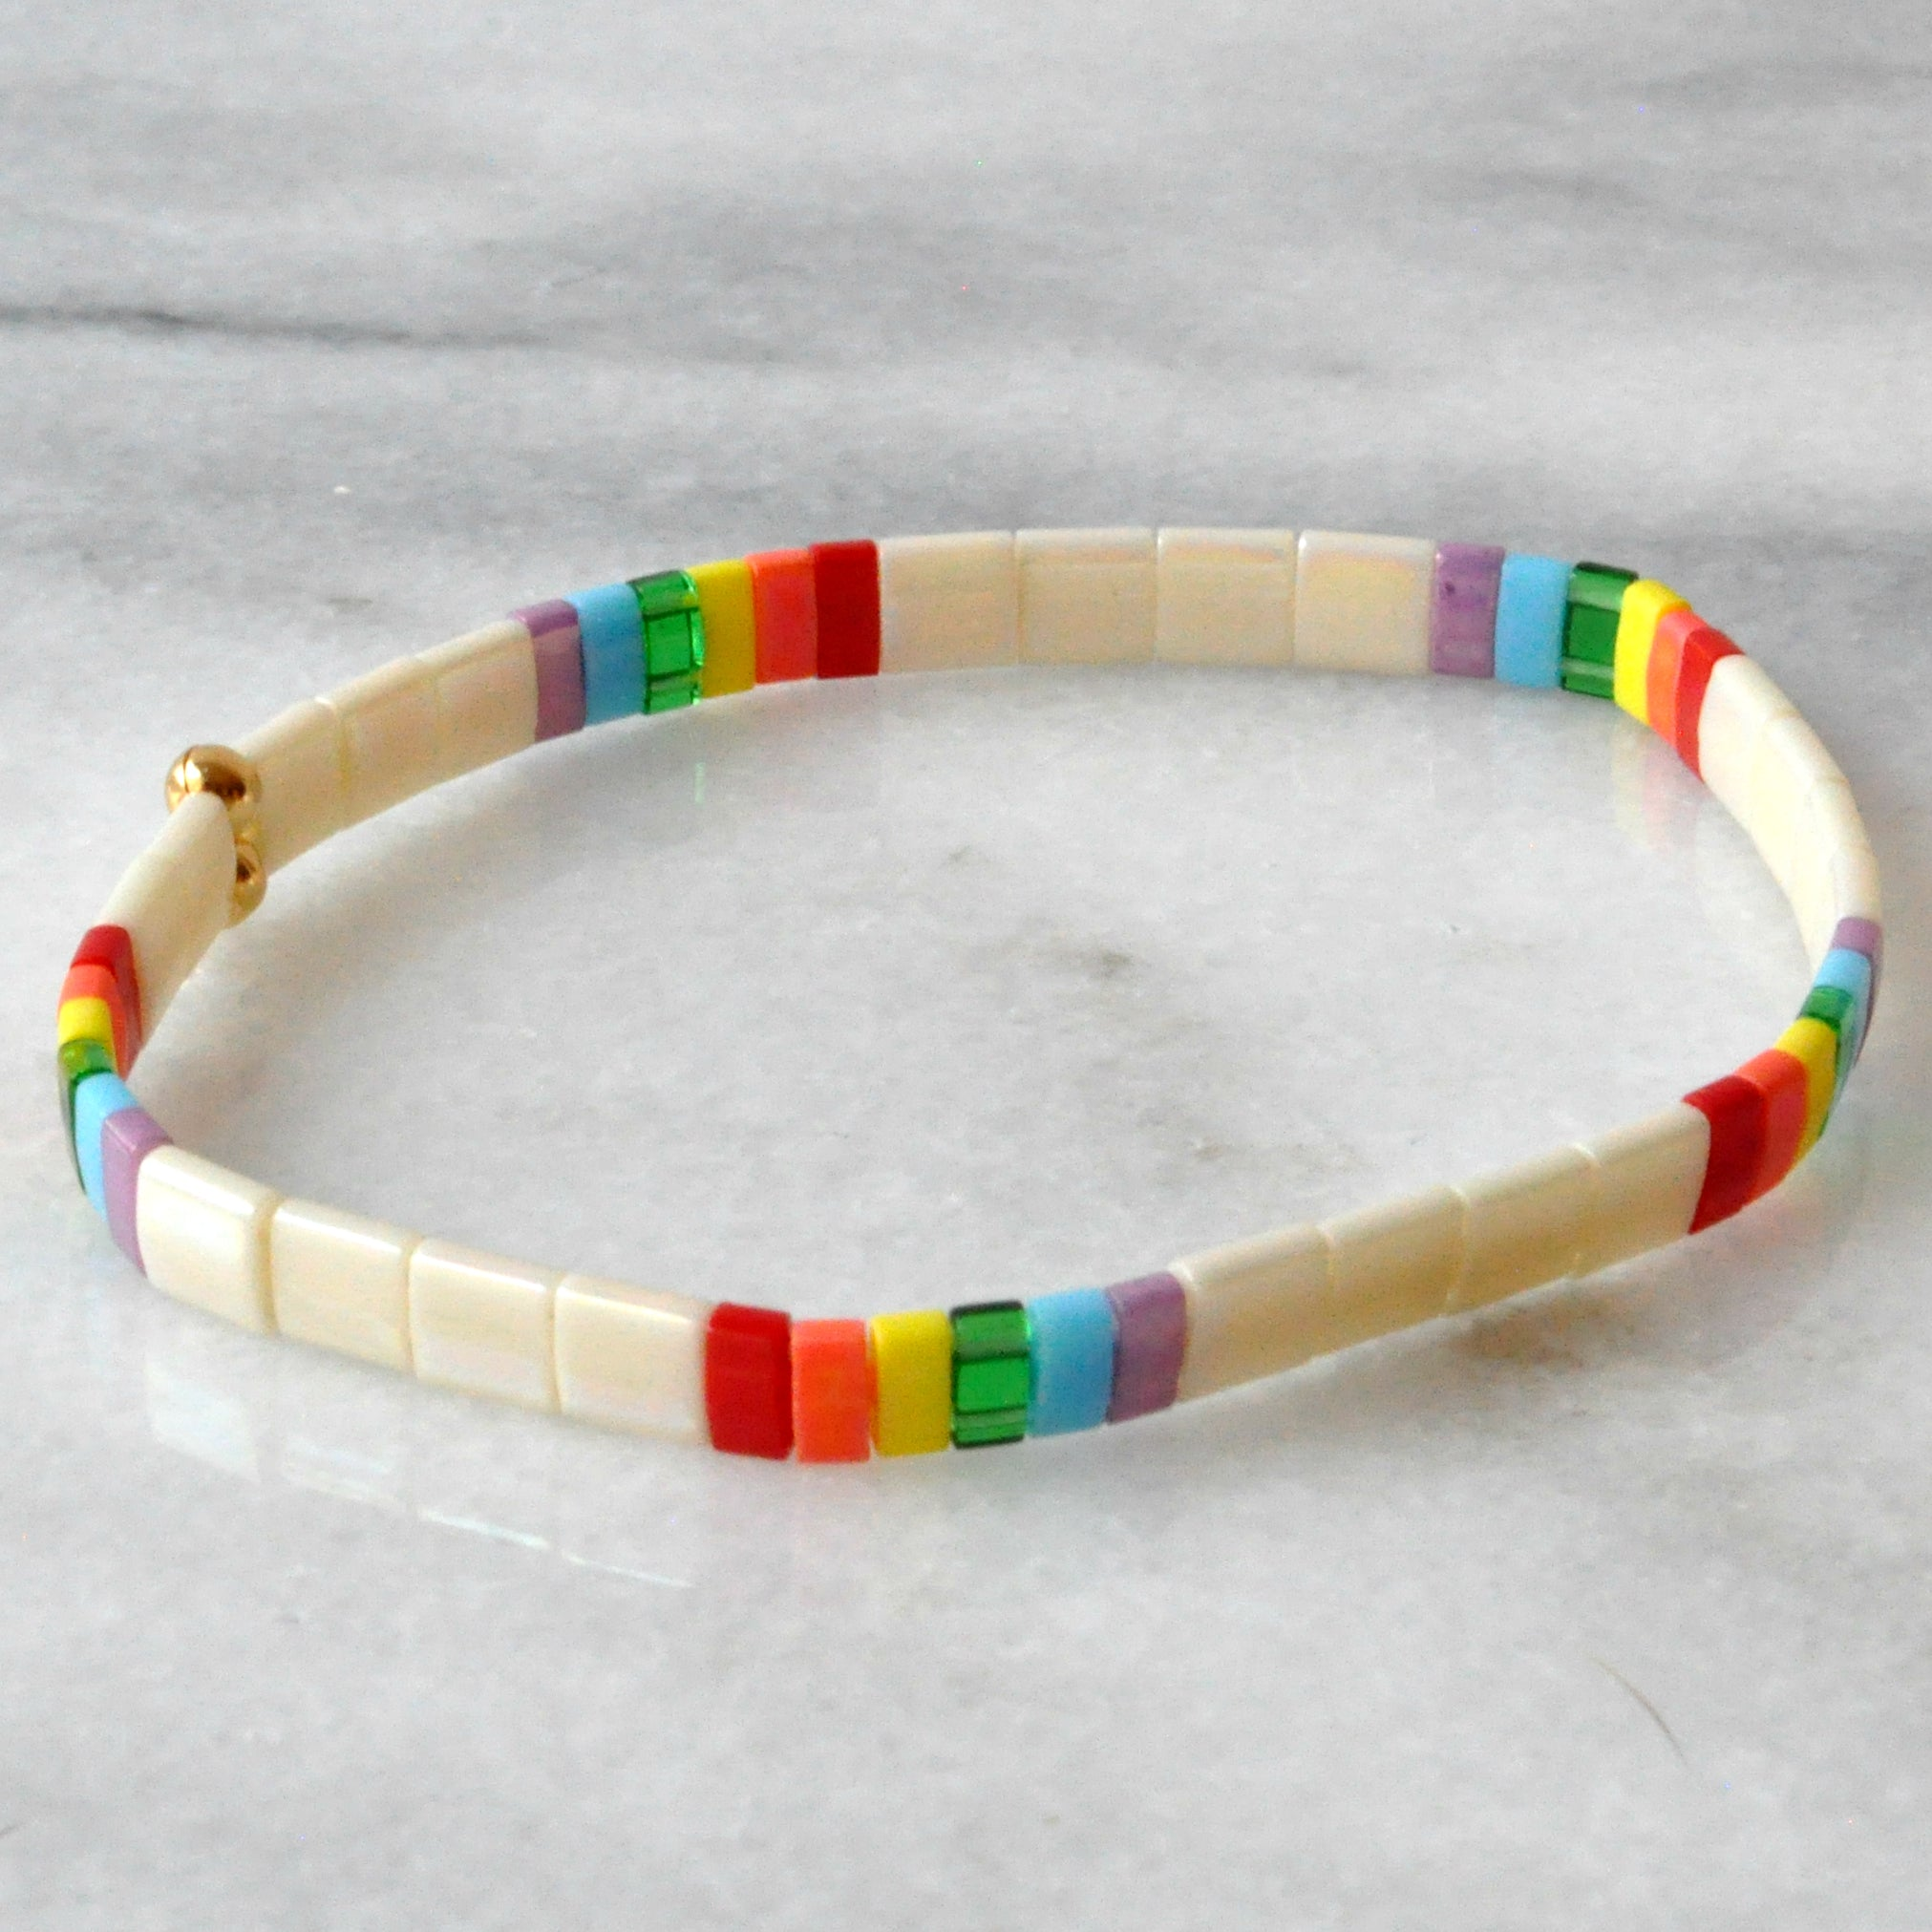 Libby & Smee stretch tile bracelet in Ivory Rainbow